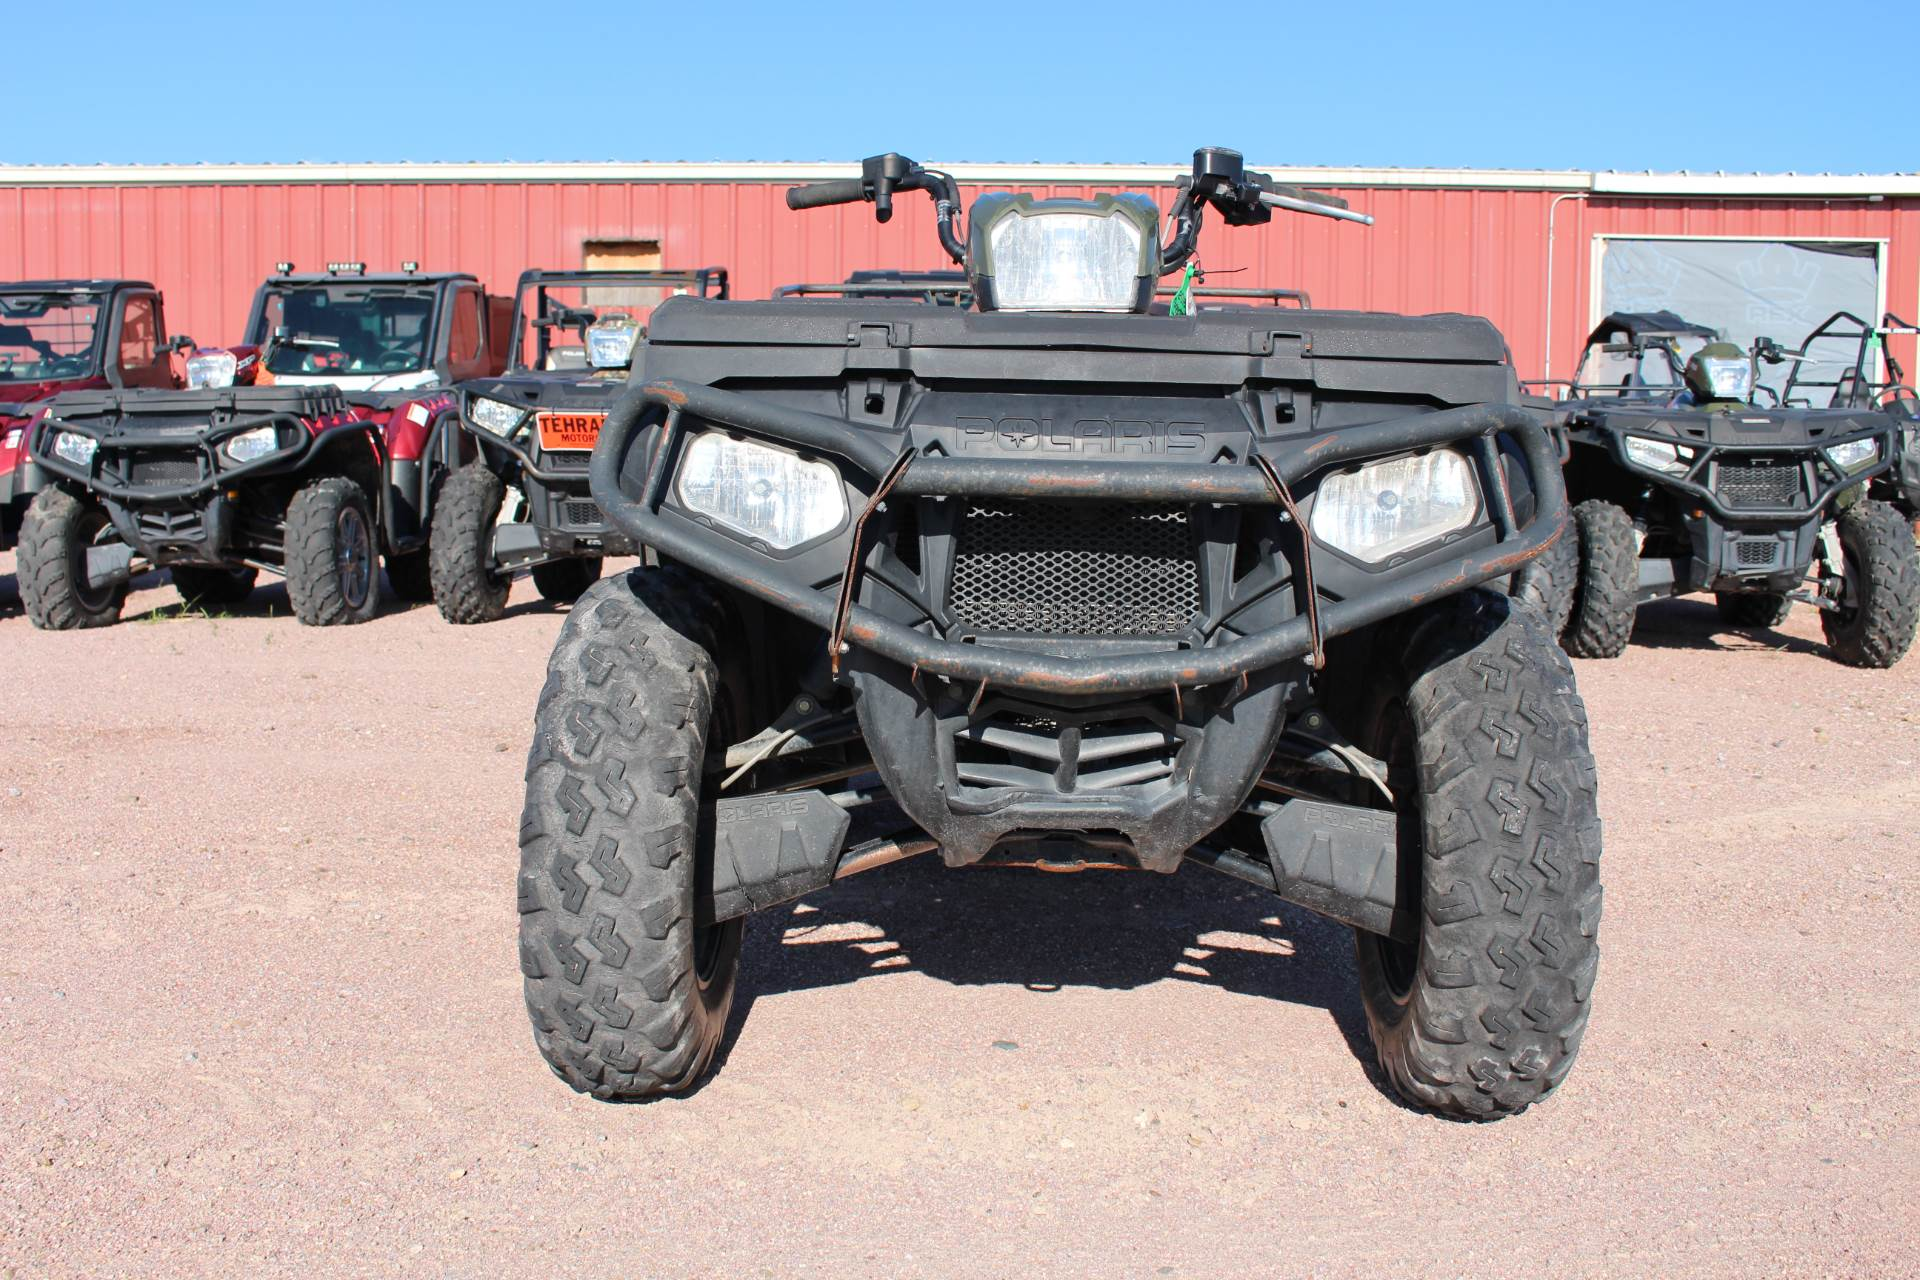 2013 Polaris Sportsman® 550 in Valentine, Nebraska - Photo 8